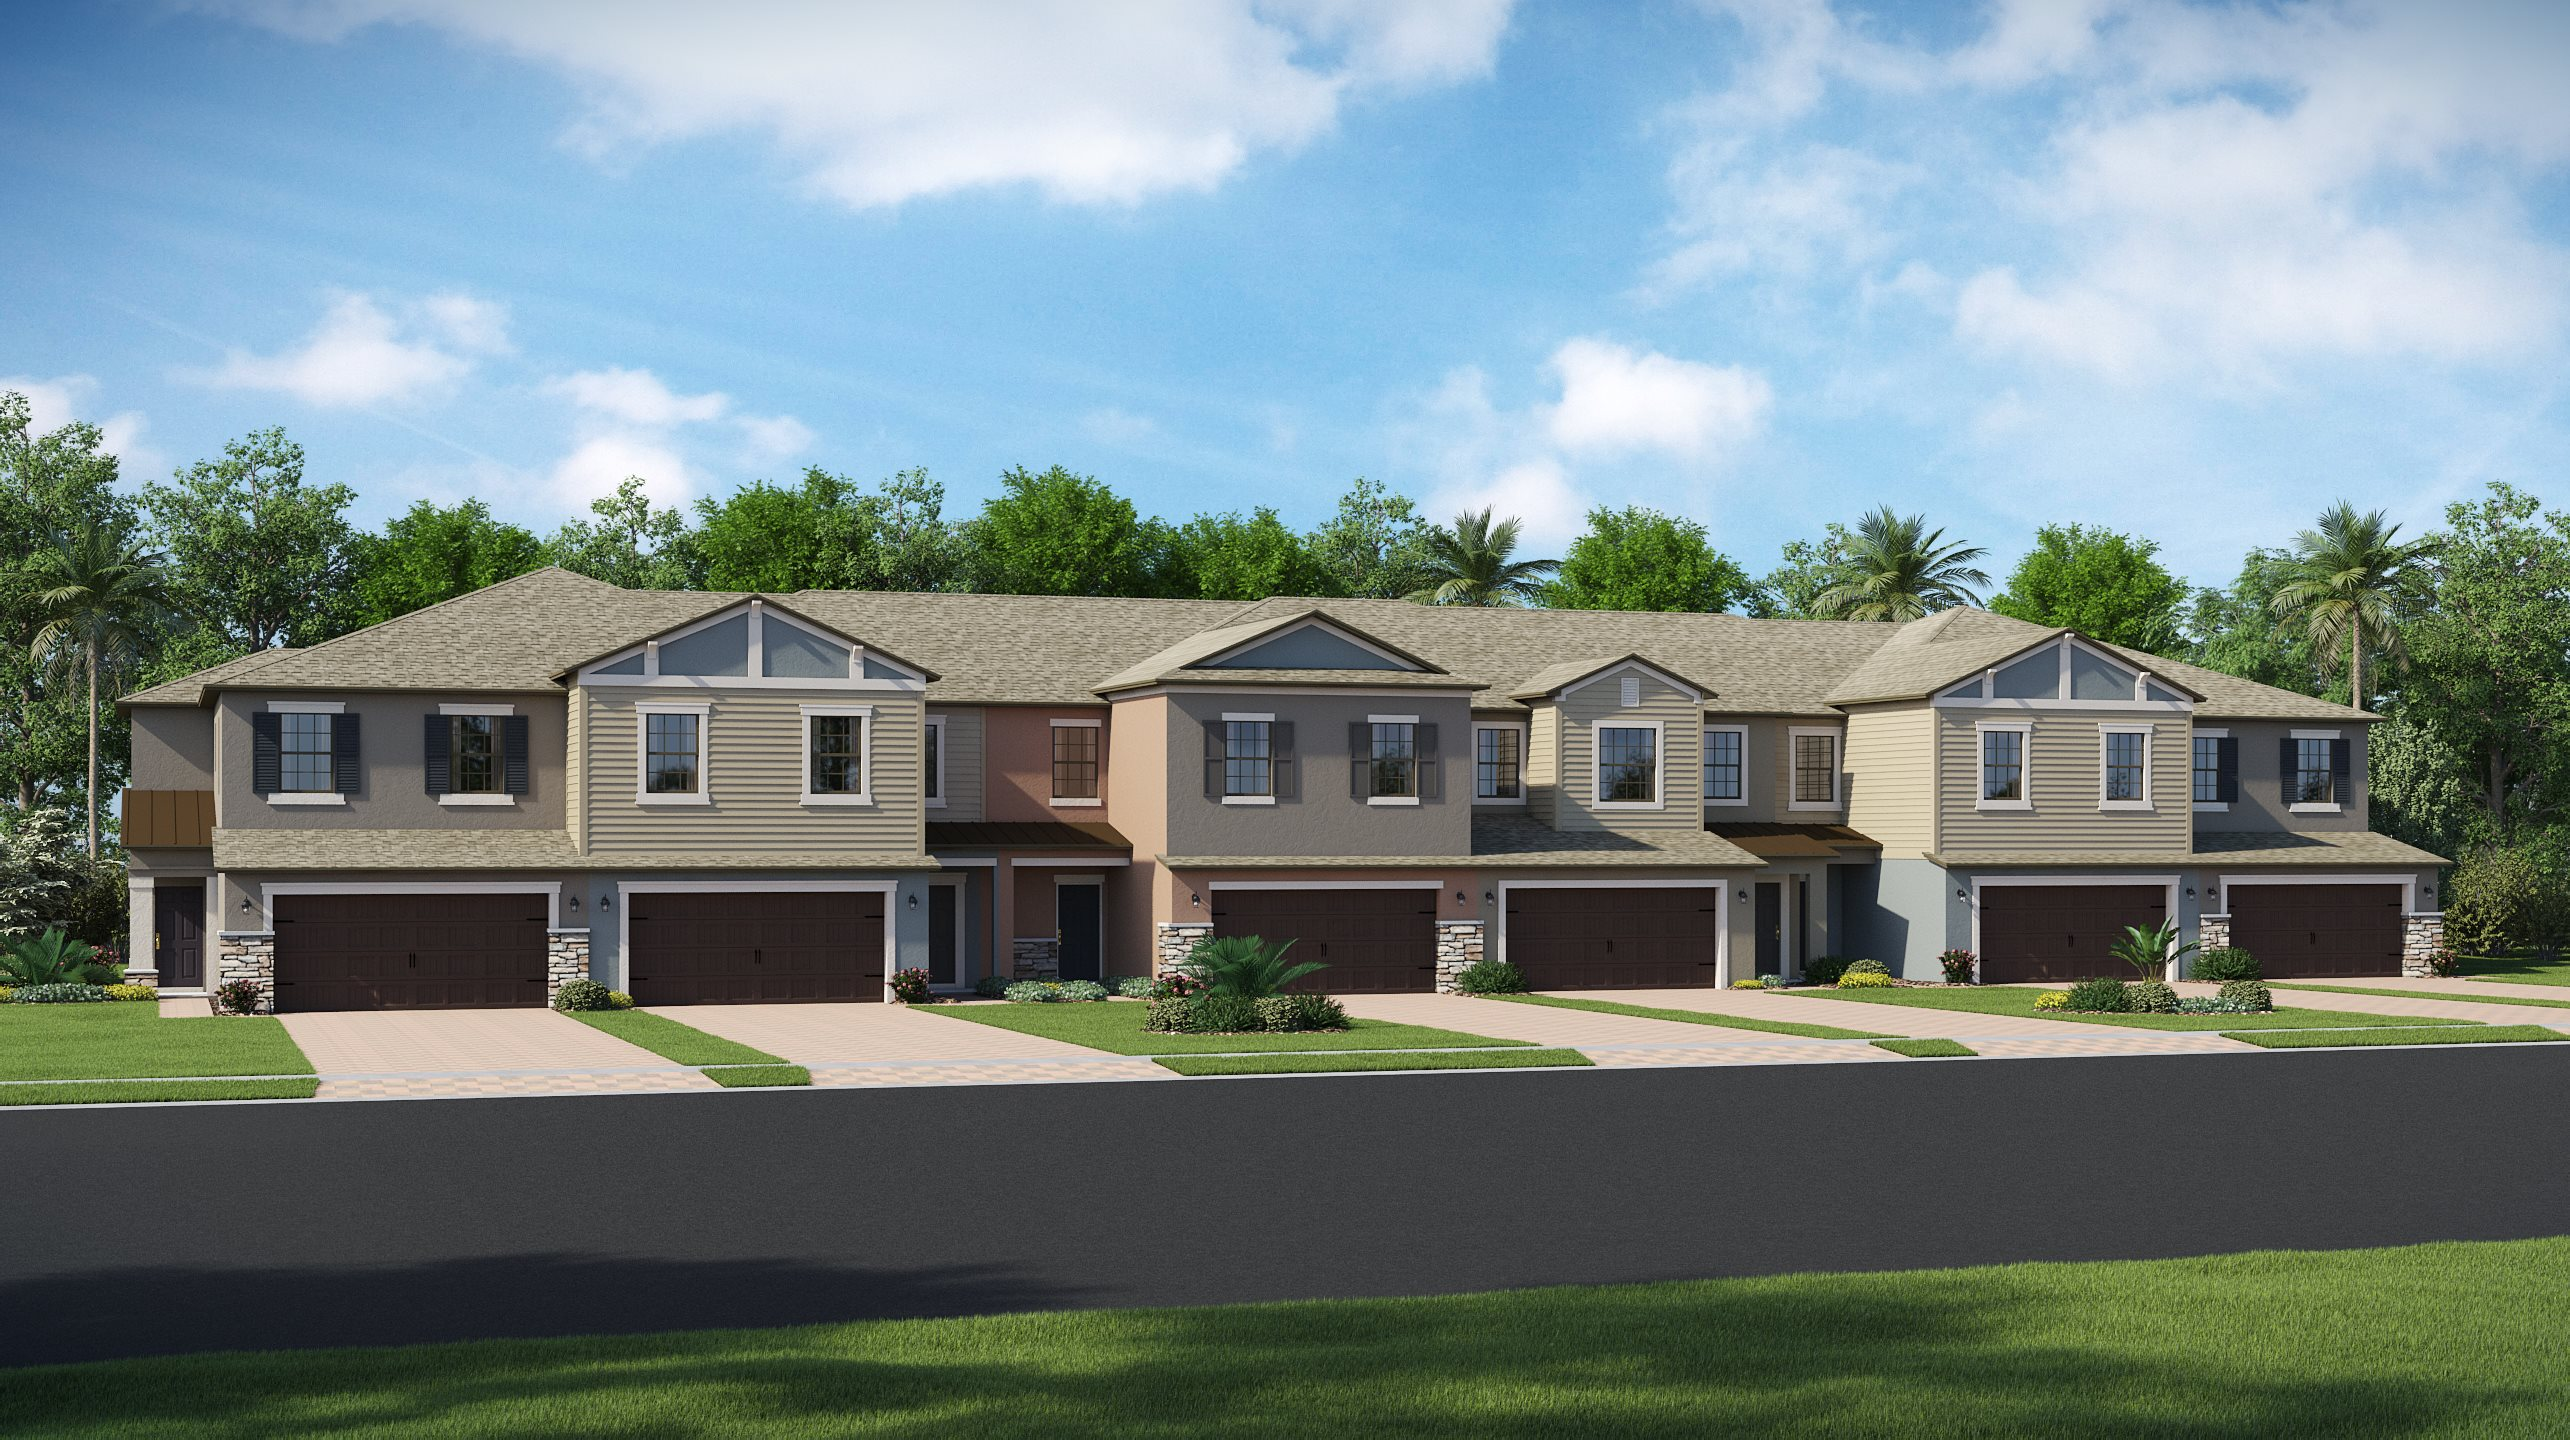 Willow - Townhomes - Marisol Exterior A